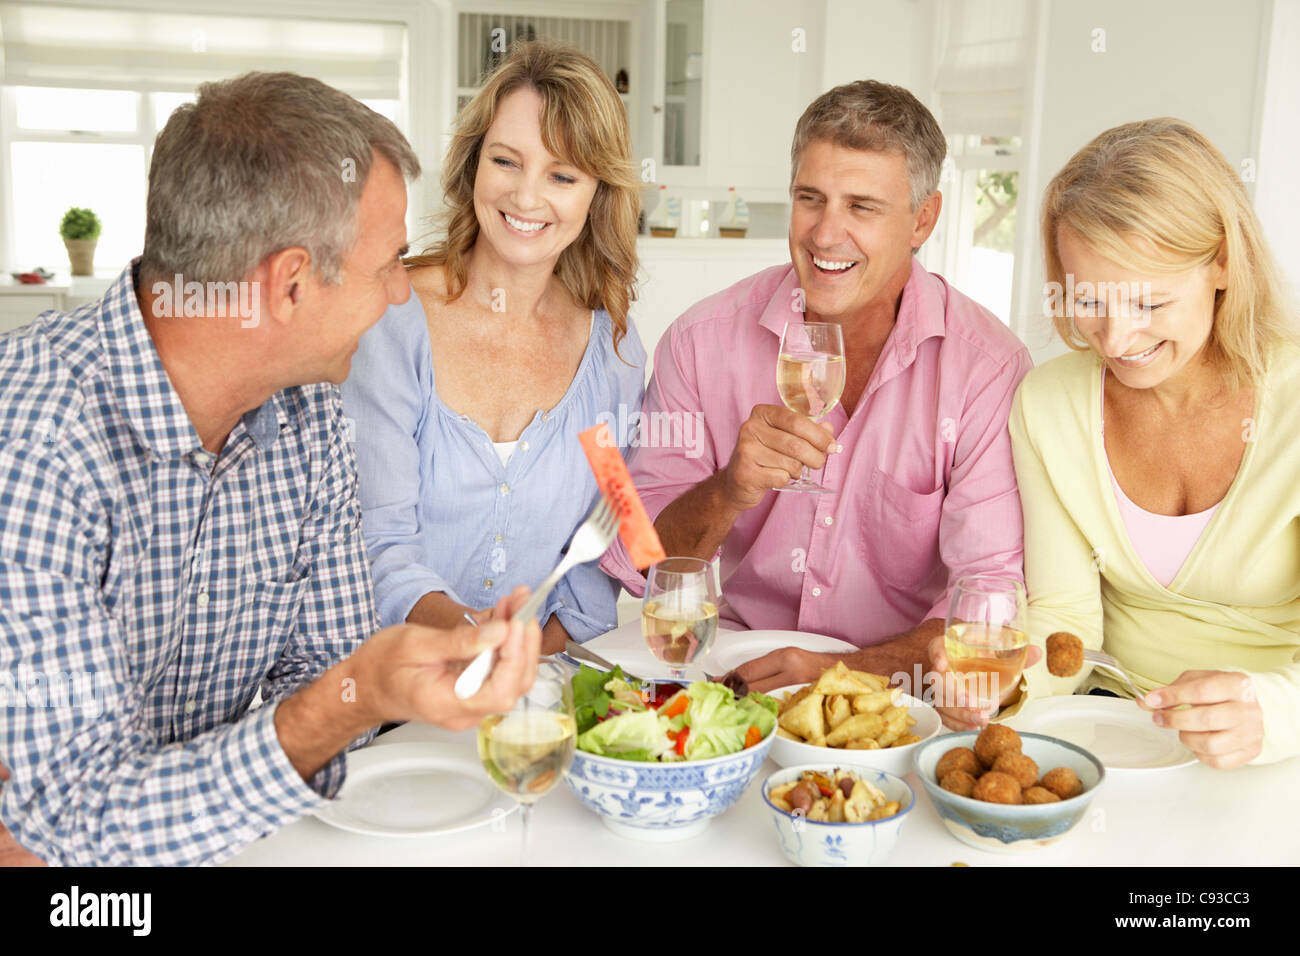 Mid age couples enjoying meal at home - Stock Image